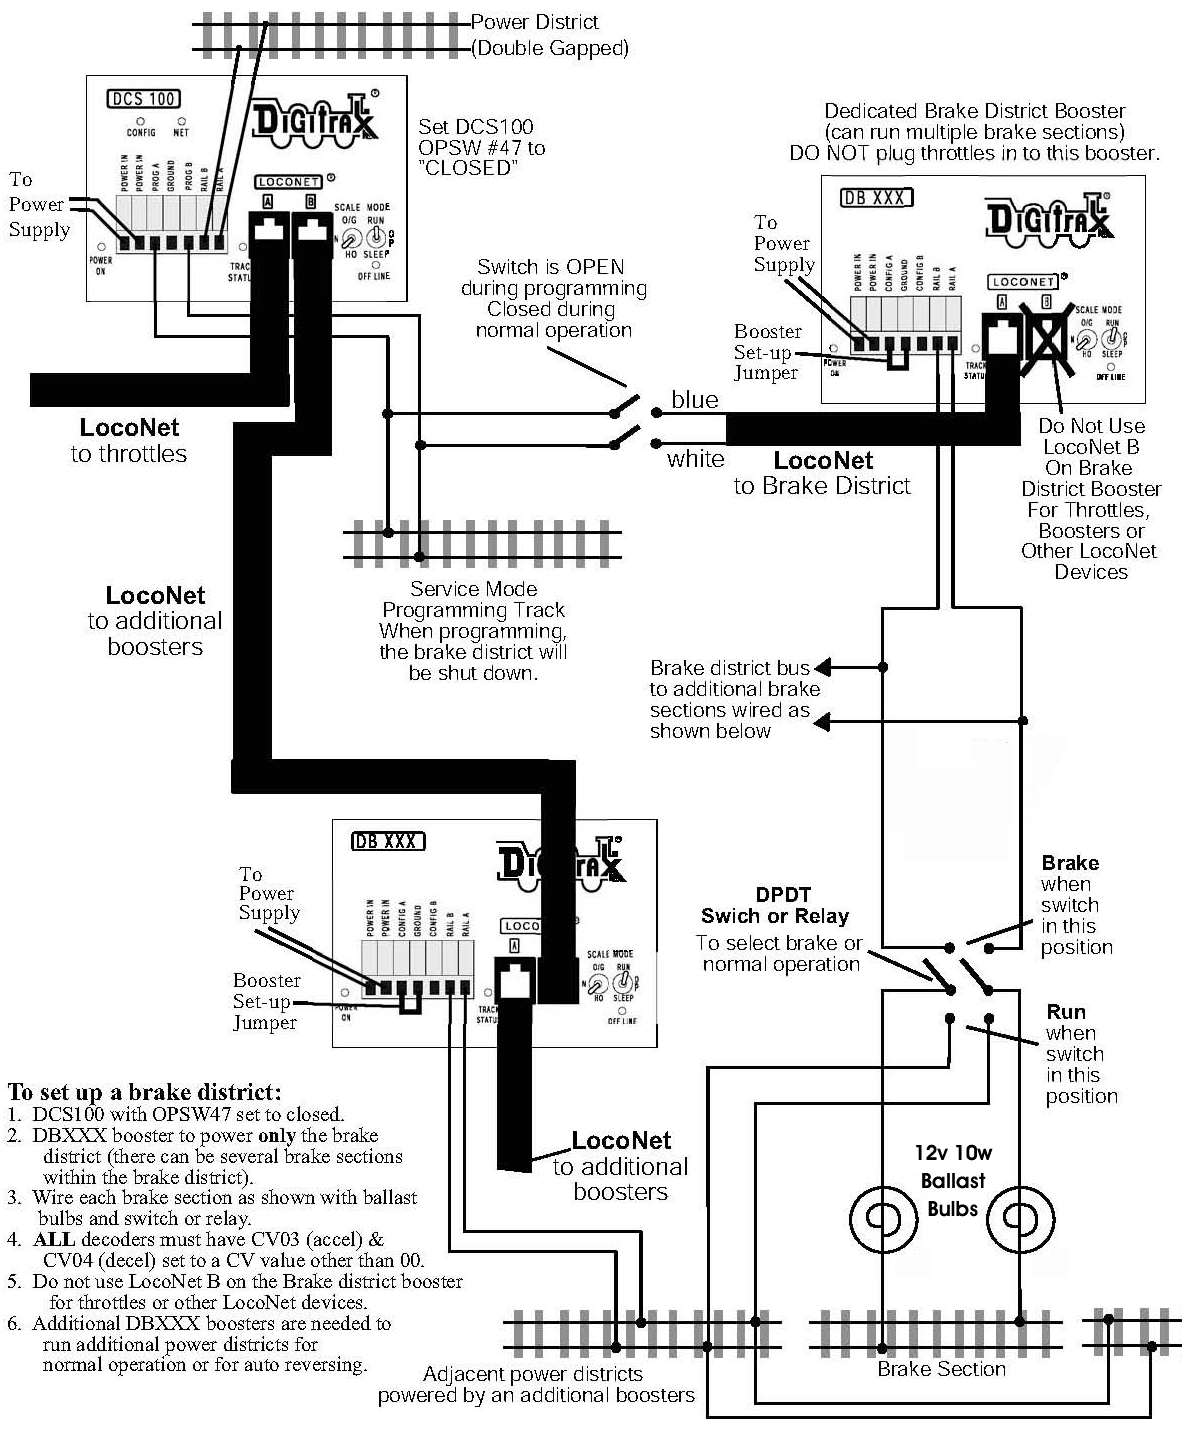 Digitrax Loconet Wiring Electrical Diagram Diagrams Kb331 Brake District Set Up Using Dcs 100 Dcs210 Or Cables Dcc